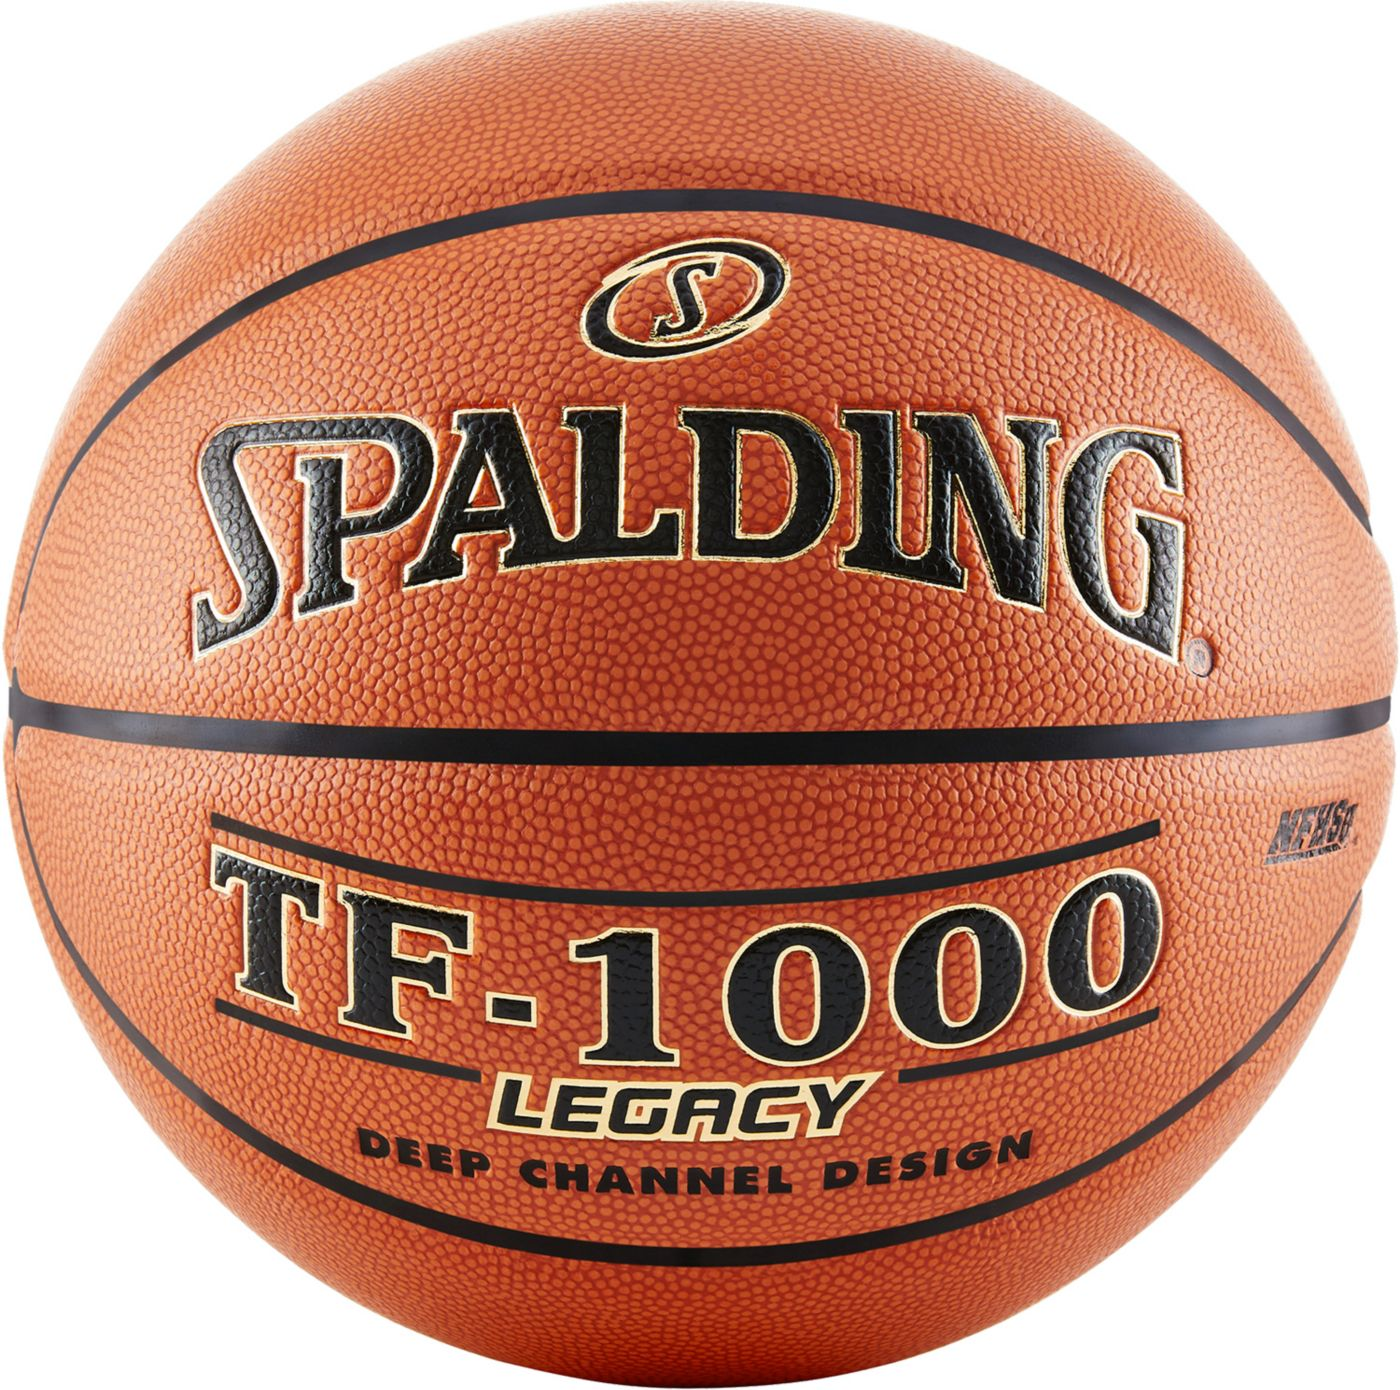 """Spalding TF-1000 Legacy Official Basketball (29.5"""")"""